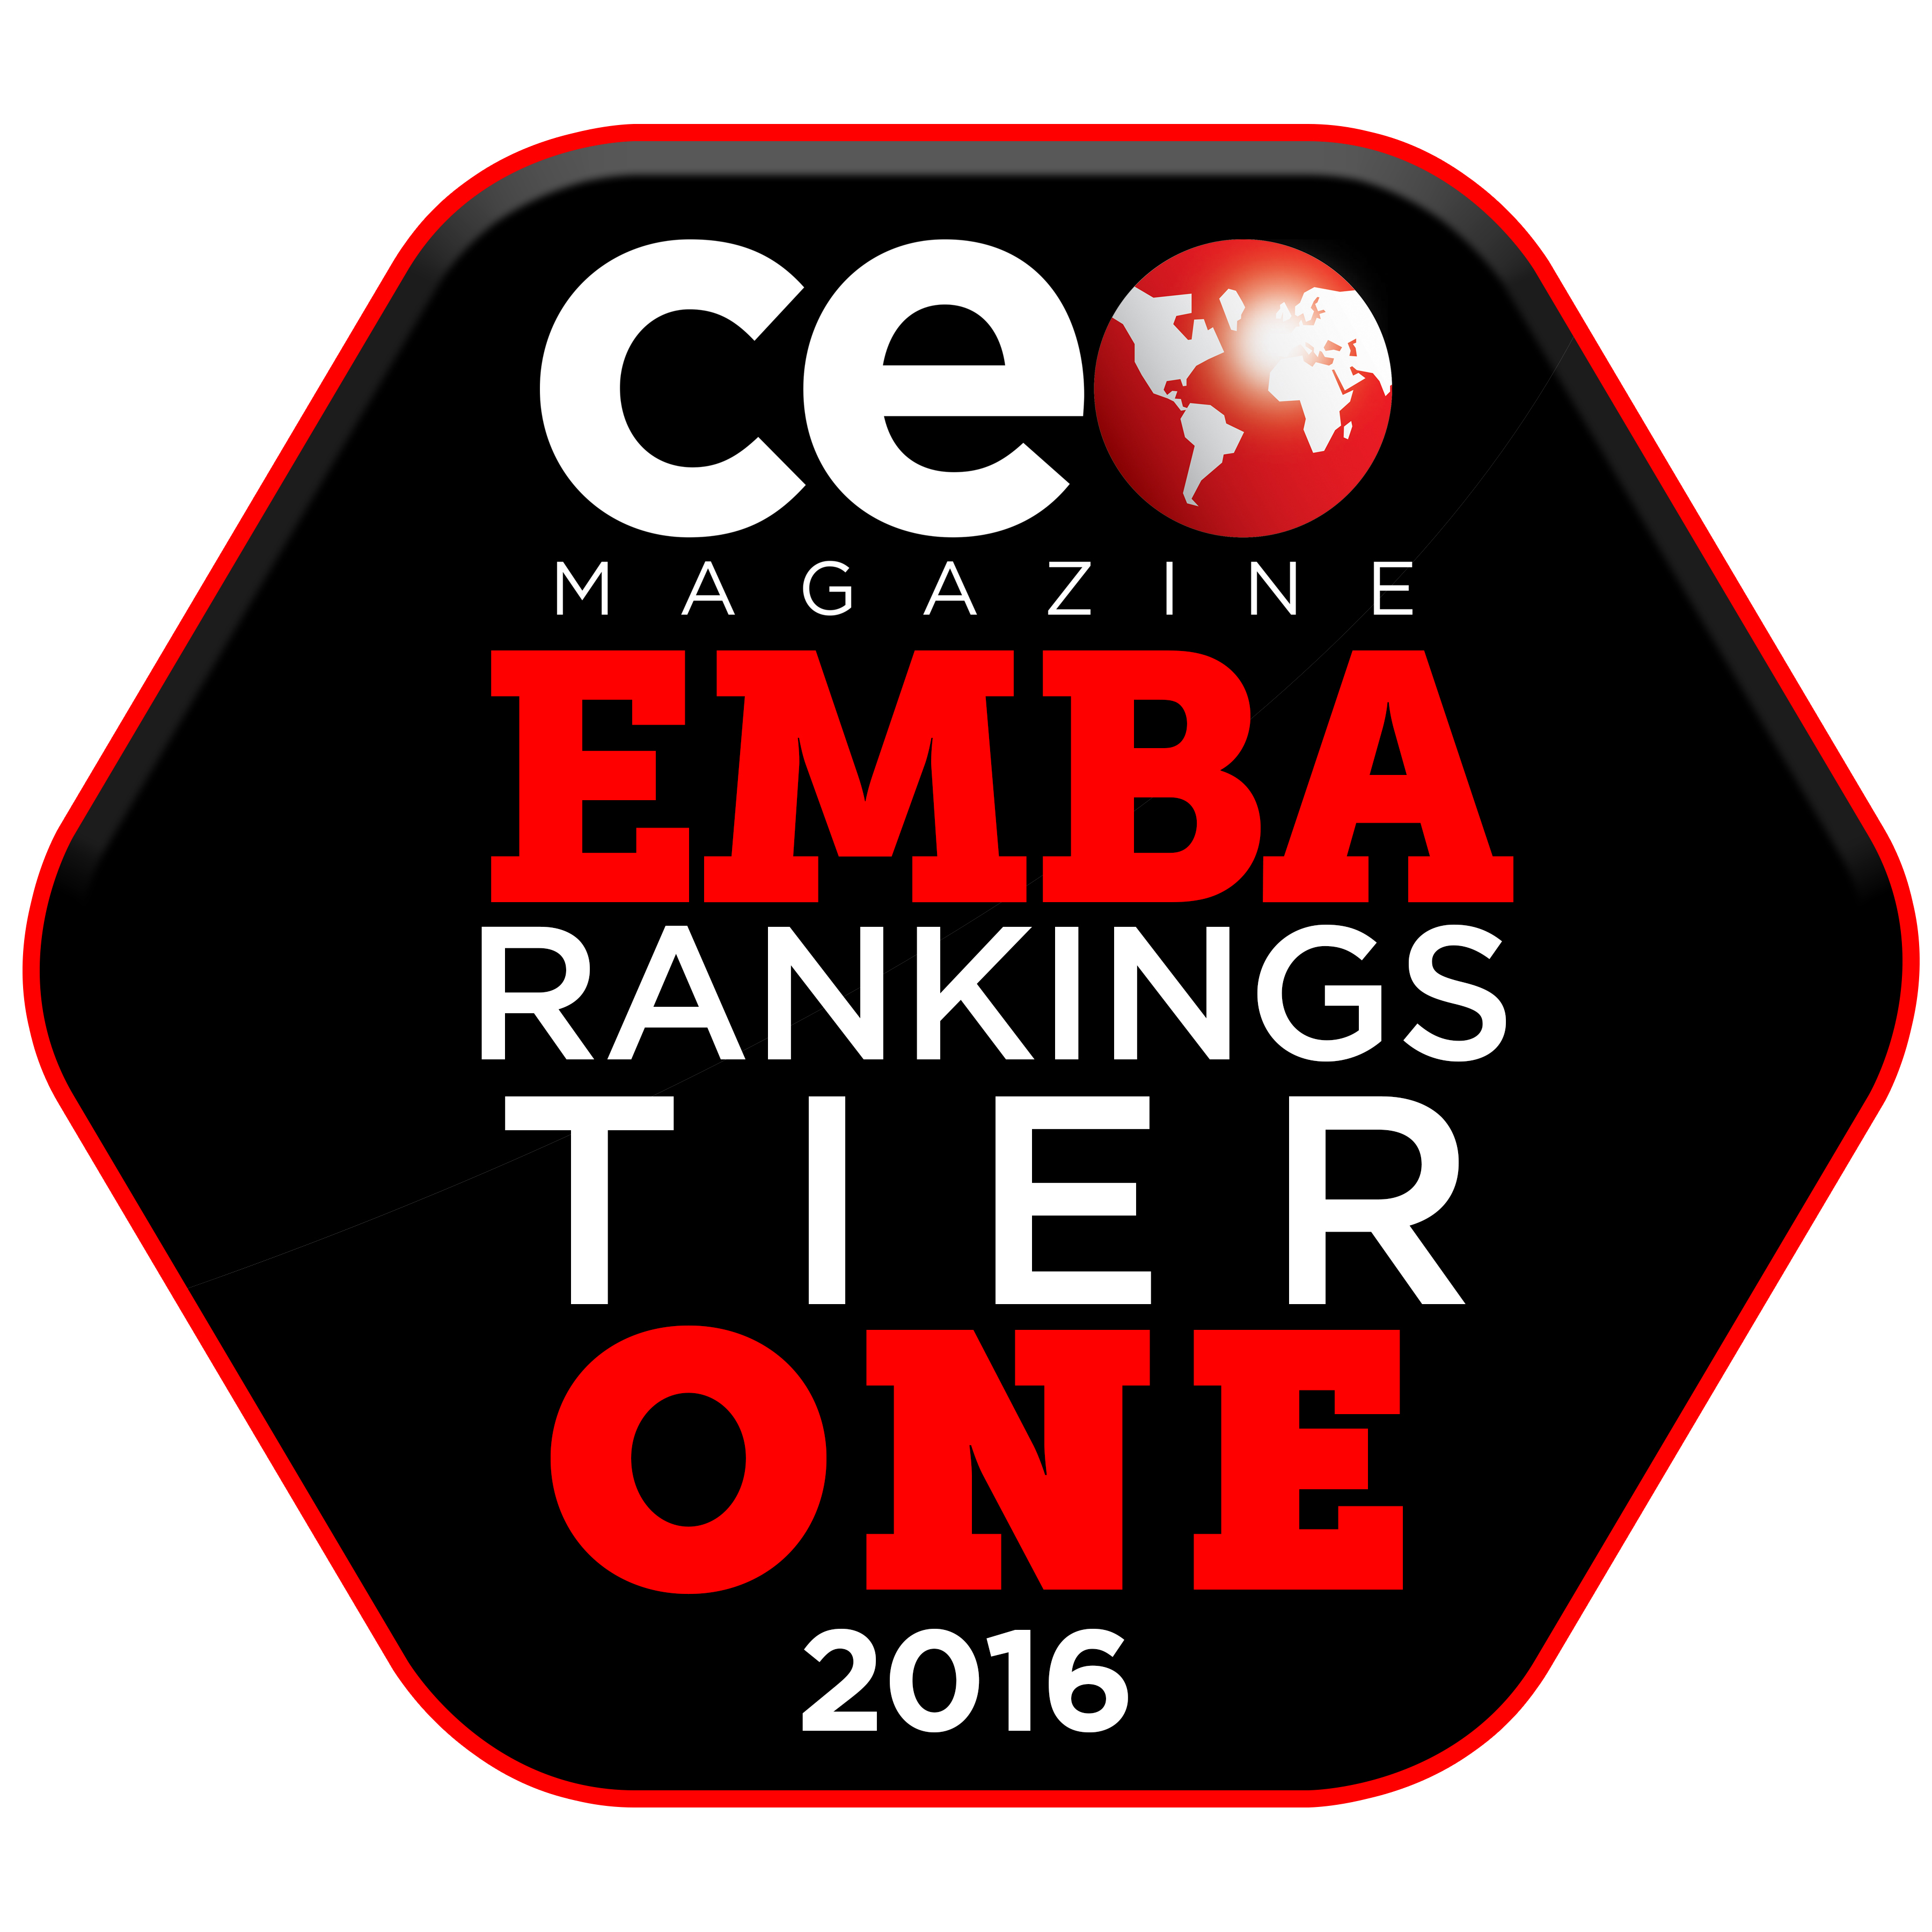 EMBA Rankings Badge